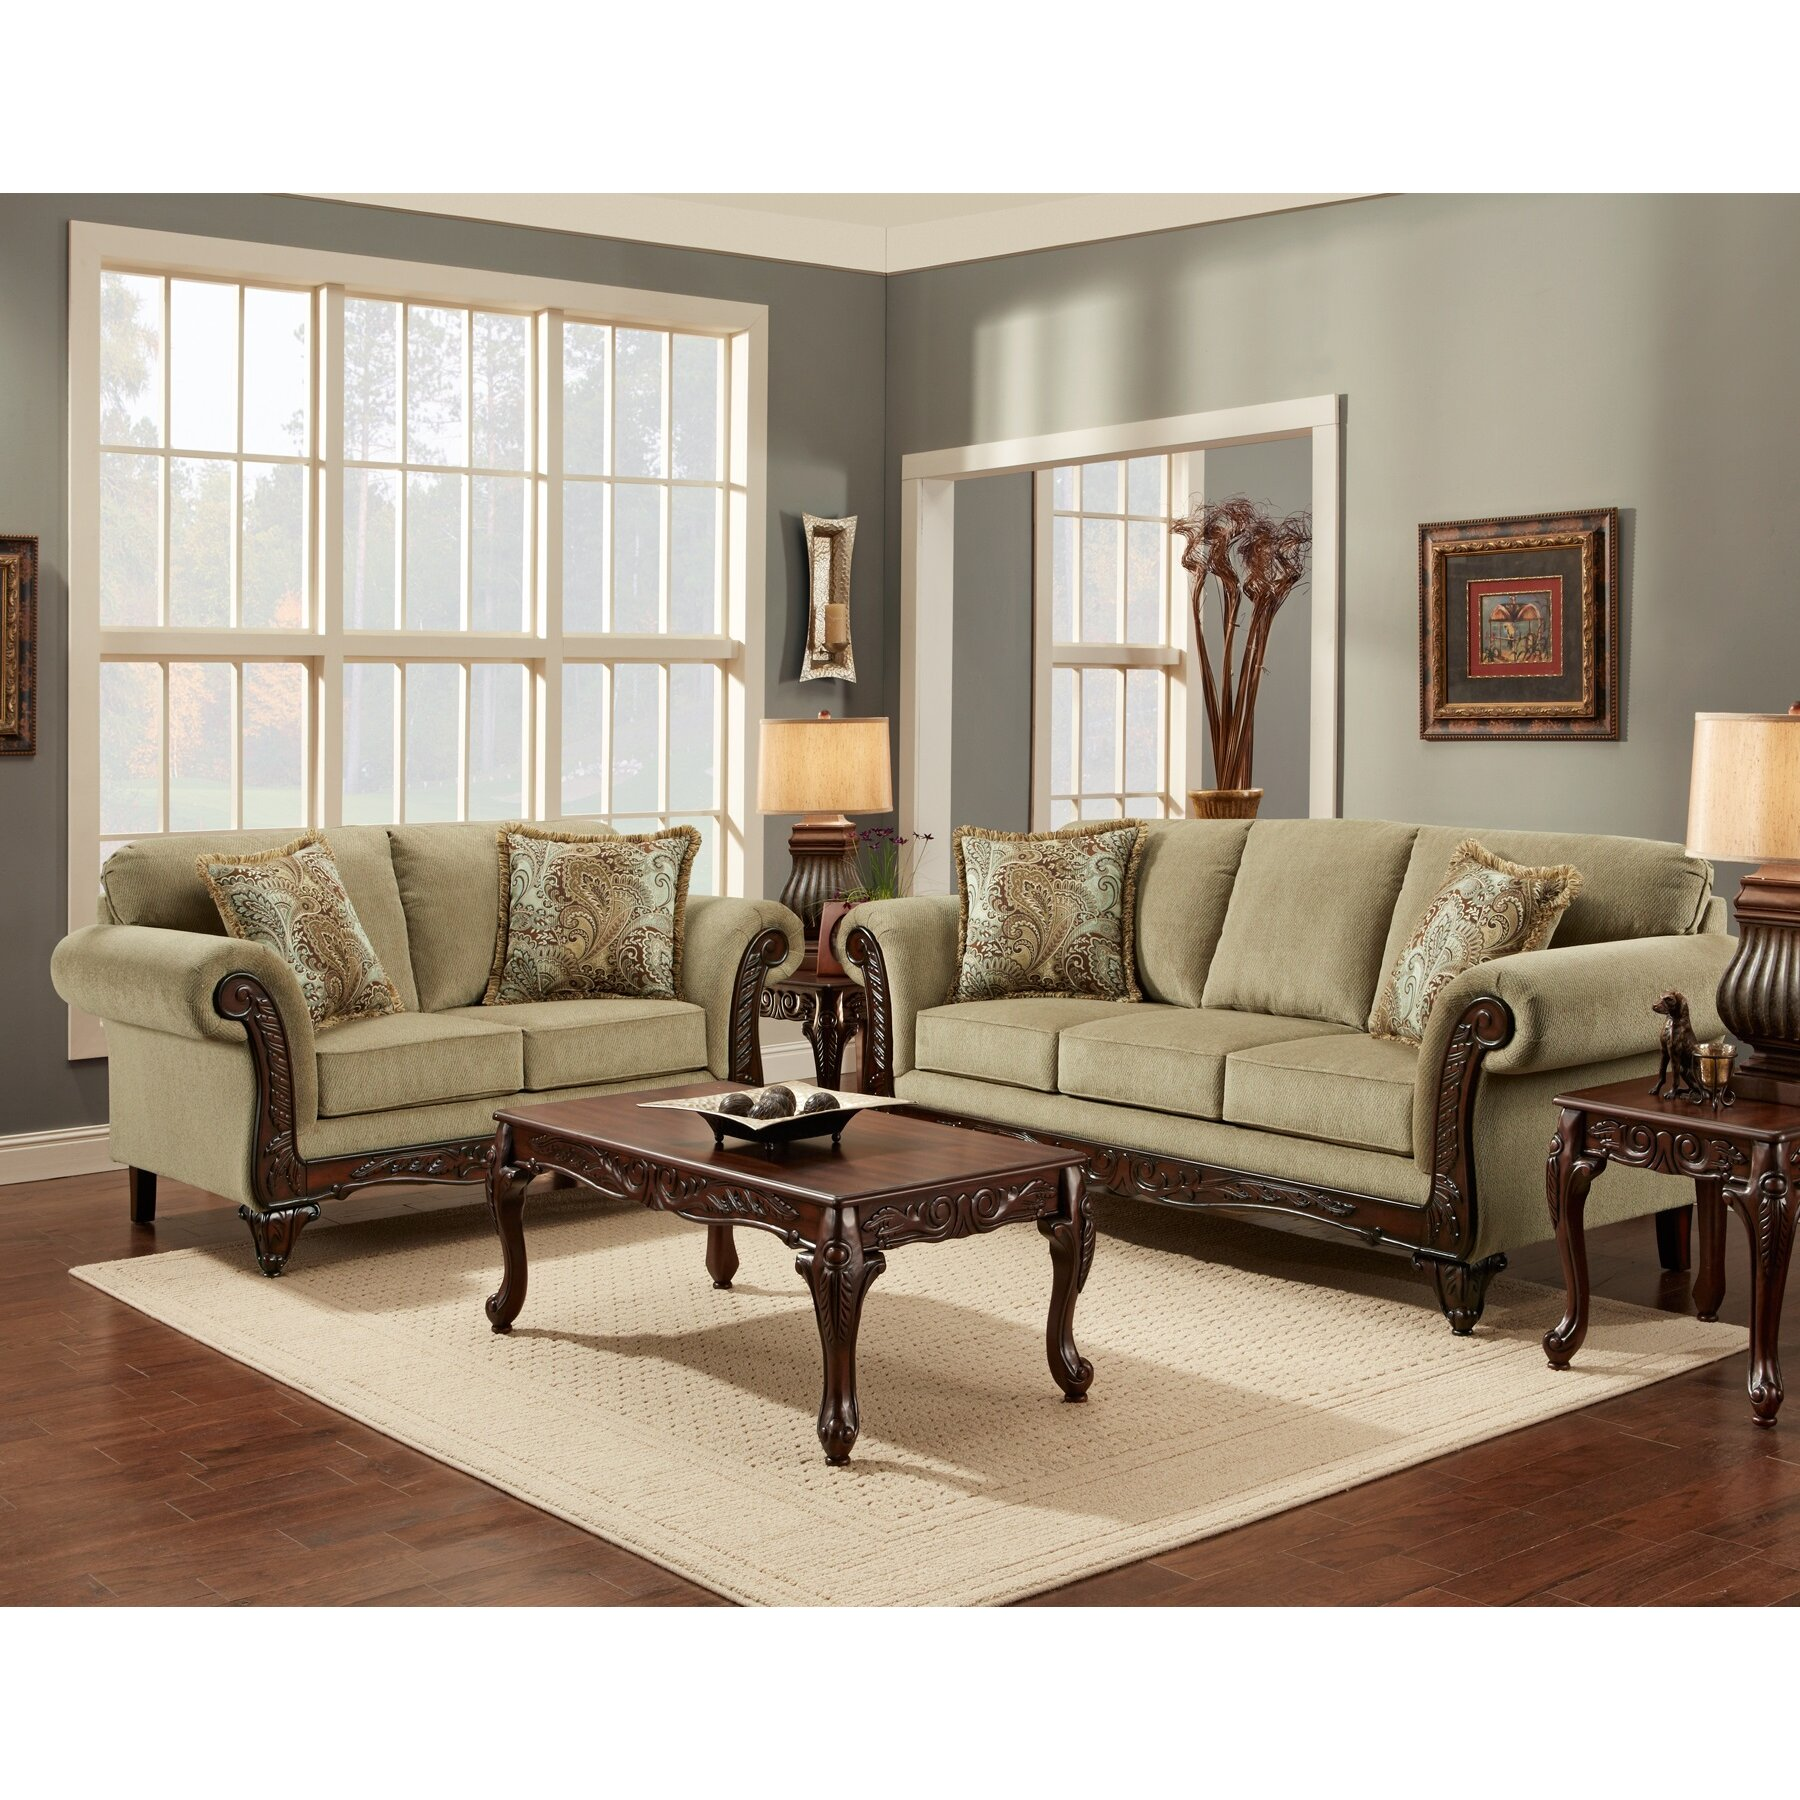 Astoria grand liddington living room collection reviews for Affordable furniture reviews